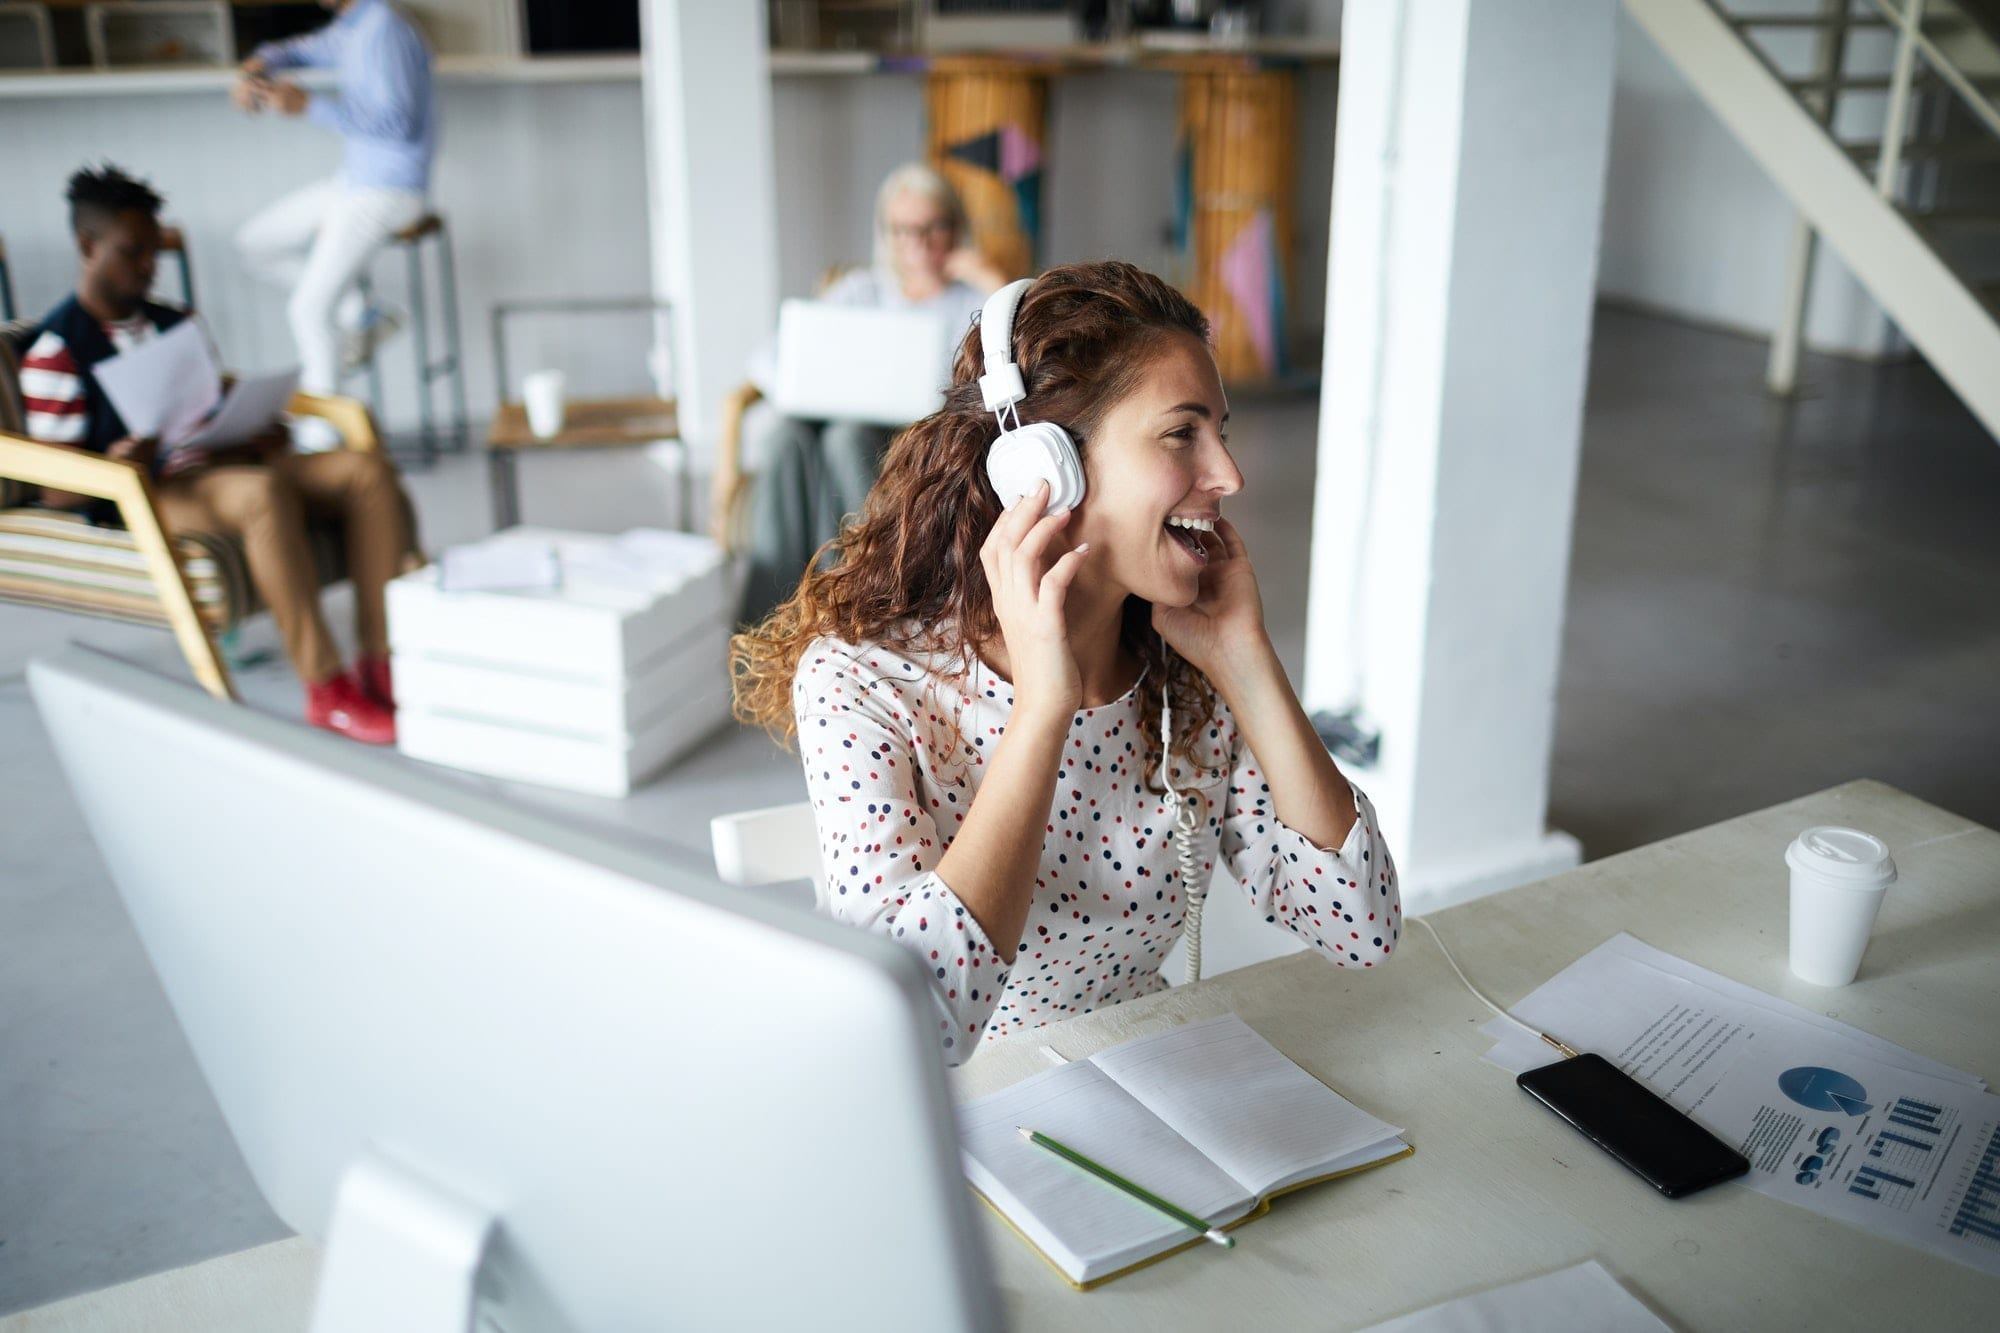 Woman with headphones on at work laughing